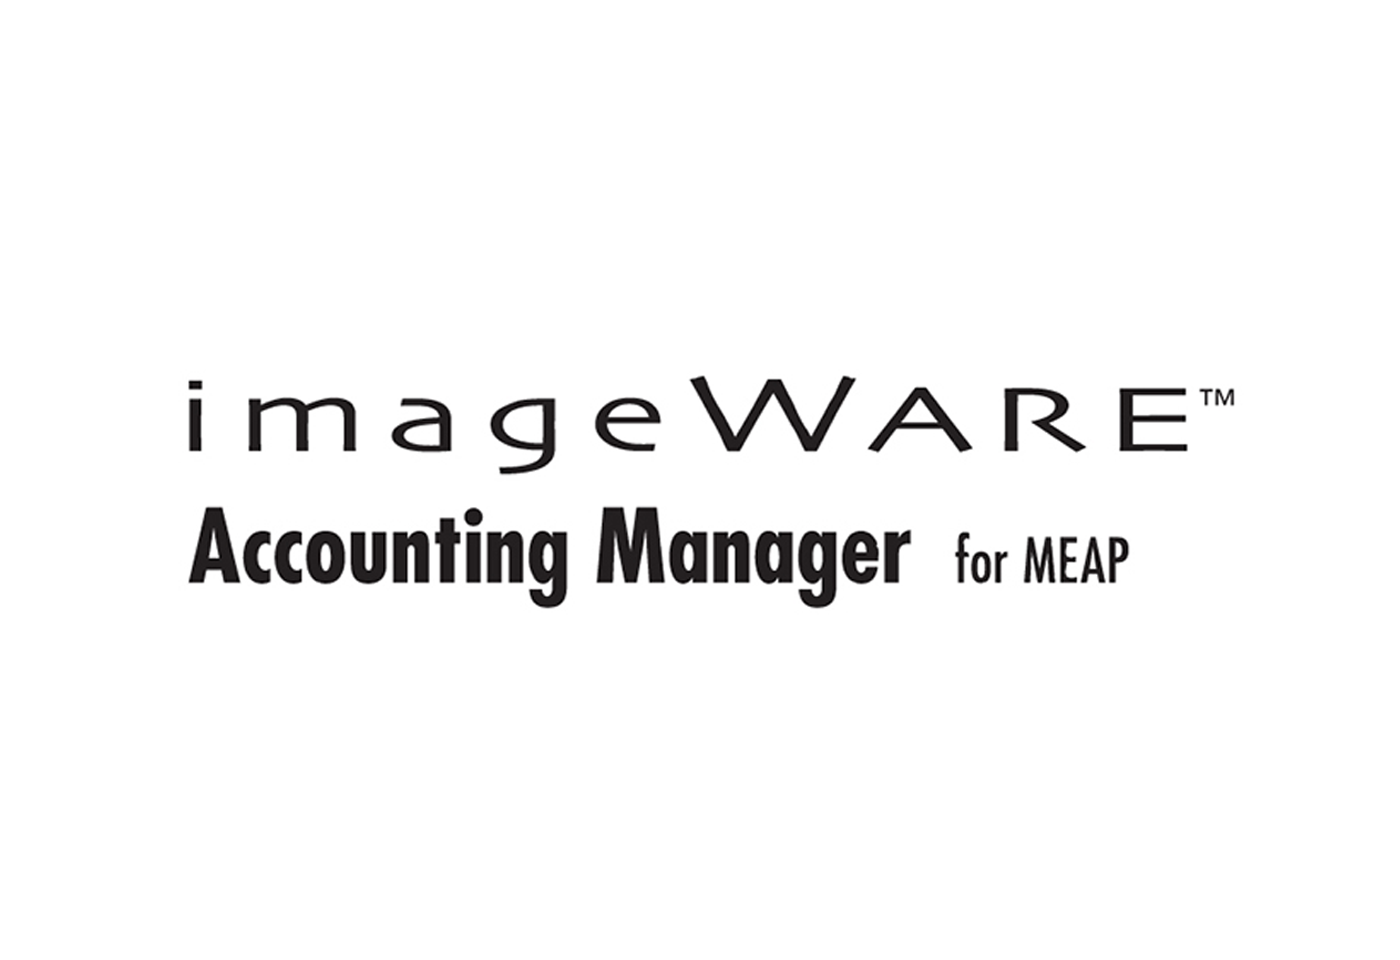 iW Accounting Manager for MEAP